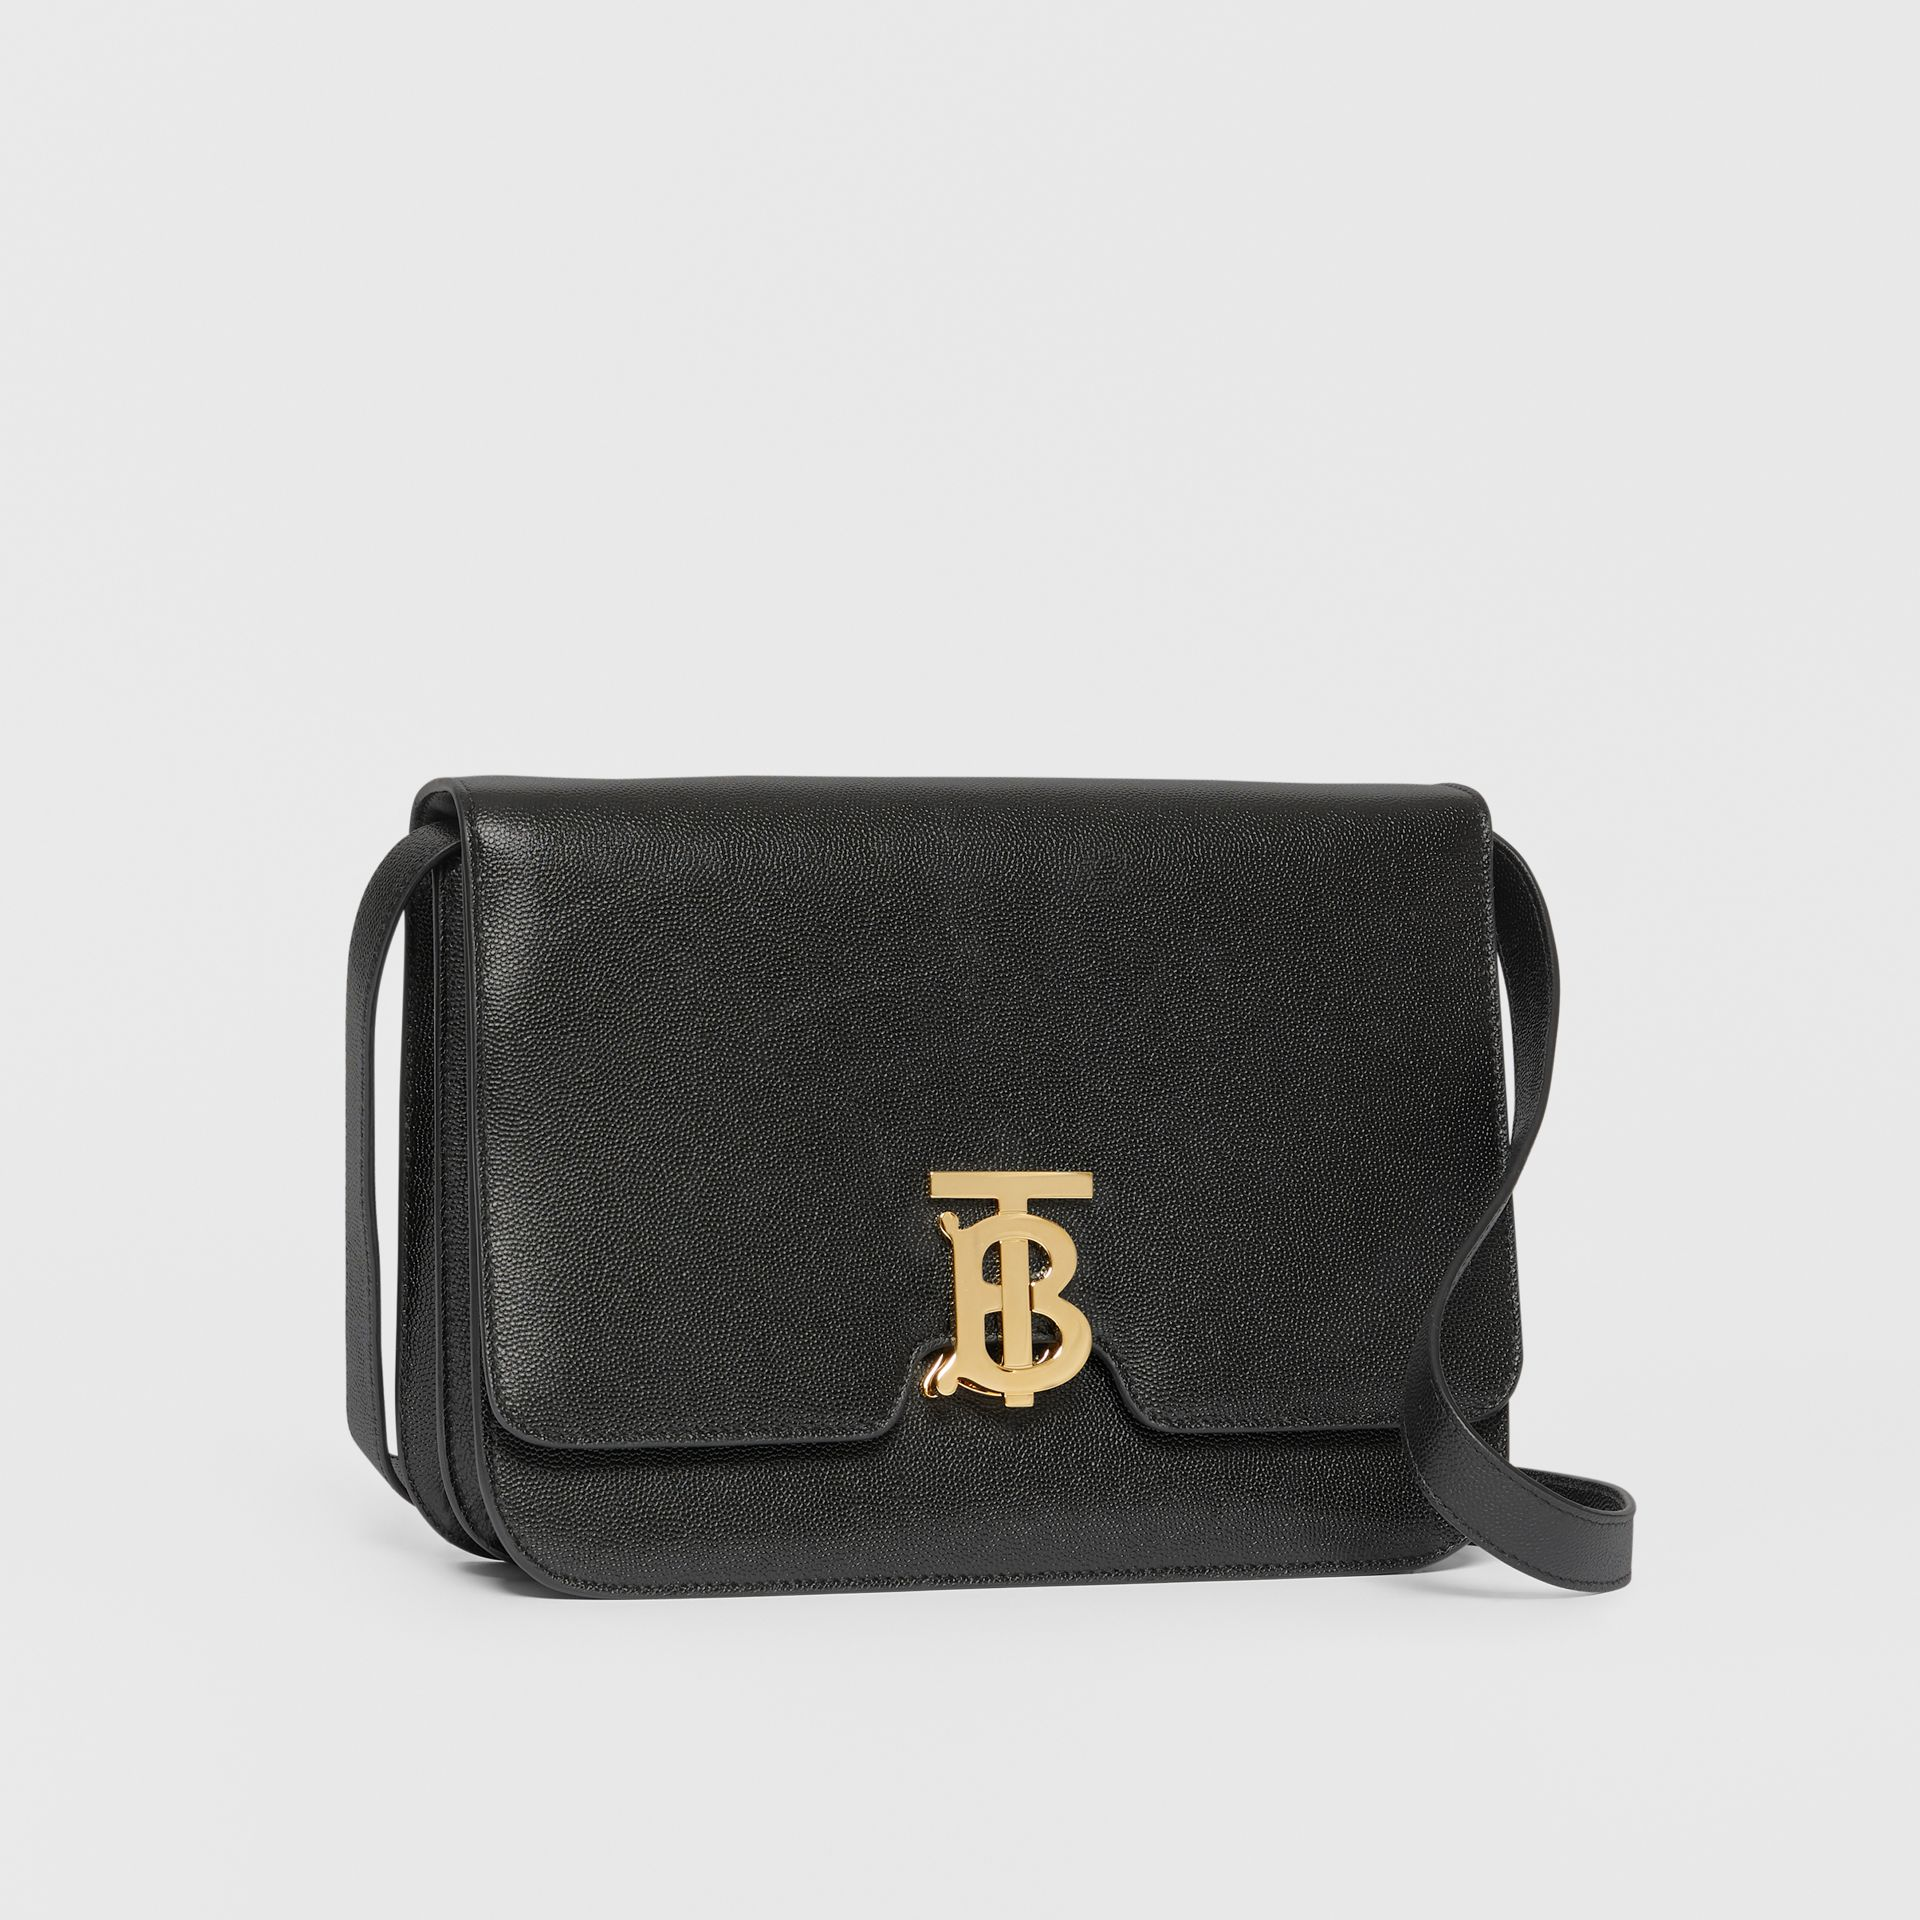 Medium Grainy Leather TB Bag in Black - Women | Burberry - gallery image 6